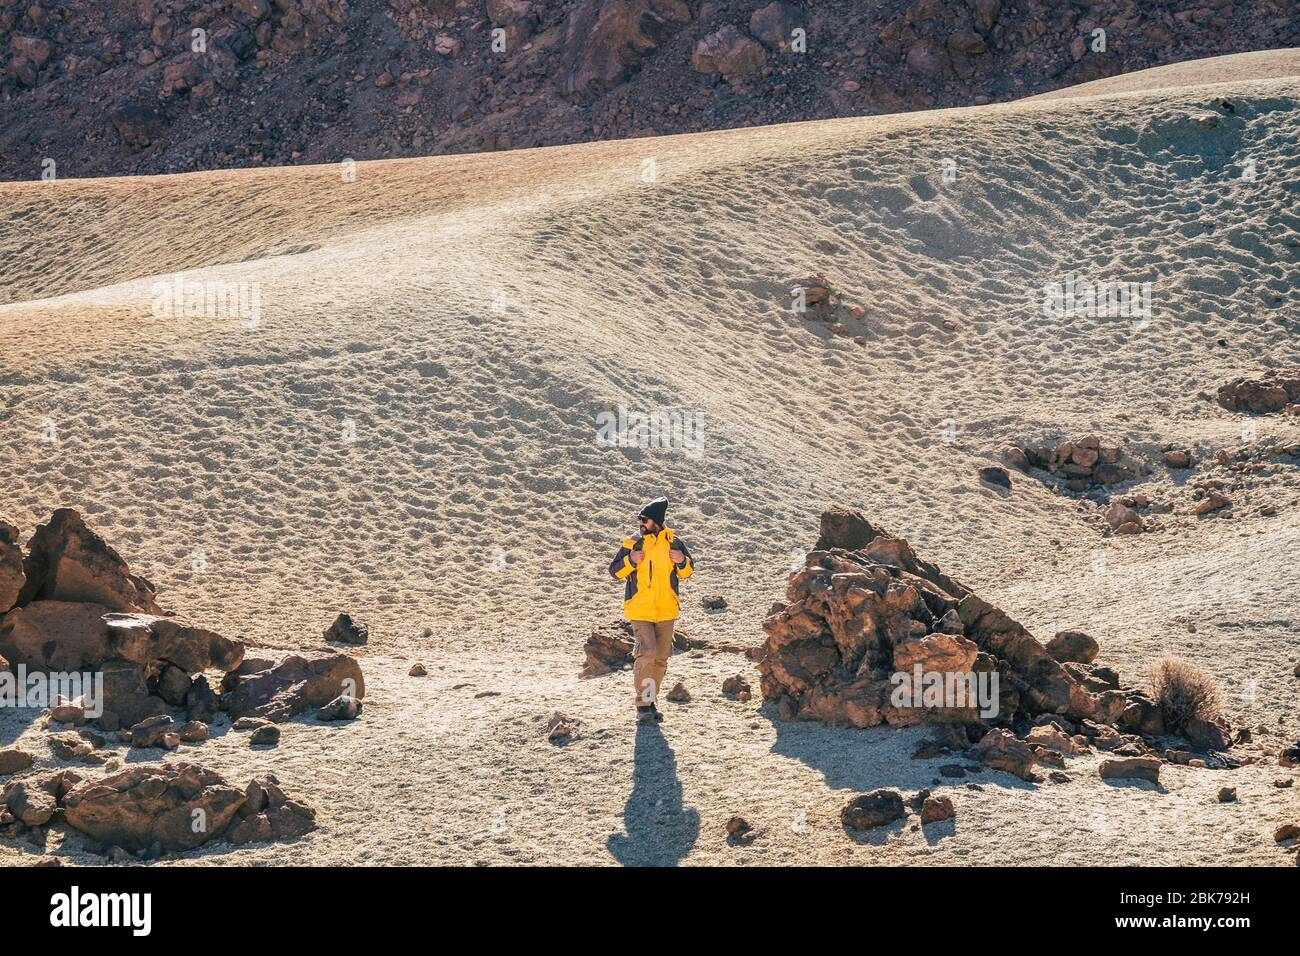 Wild hiking outdoor activity in the mountain and desert scenic landscape - caucasian professional adventurer man walk and discover beautiful places - Stock Photo